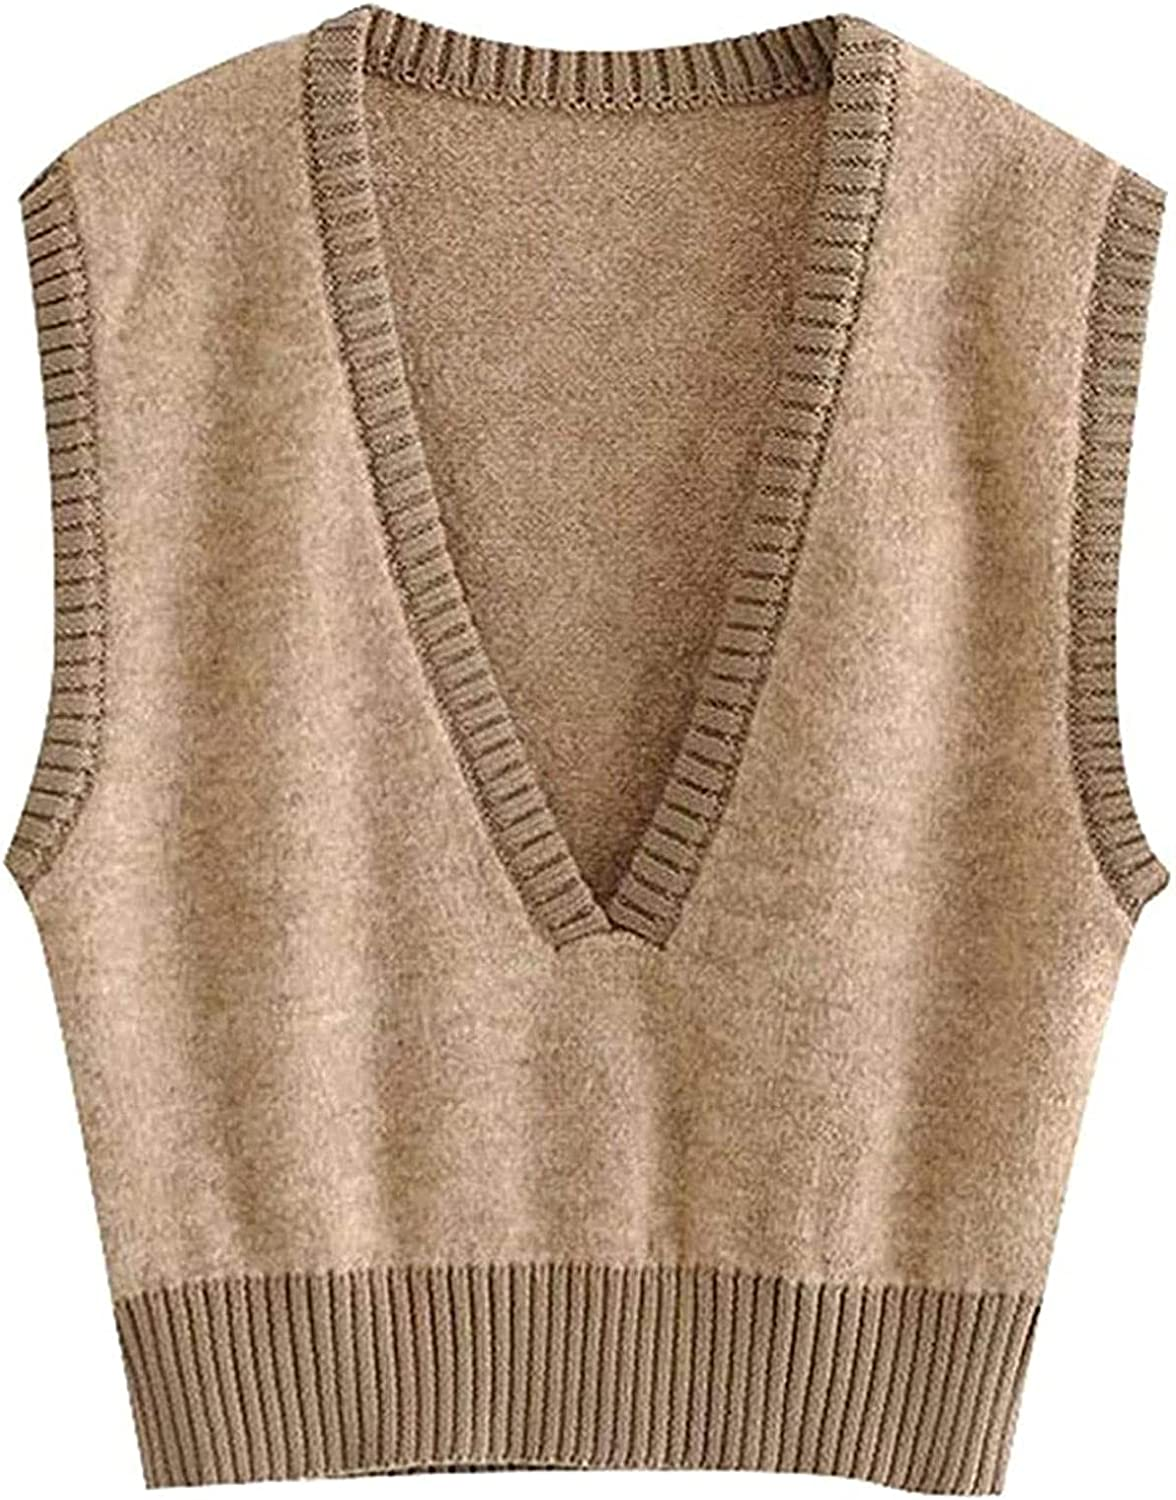 Cash special price Women Sales of SALE items from new works Fashion Deep V Neck Vintage Cropped Vest Sweater Sleeveles